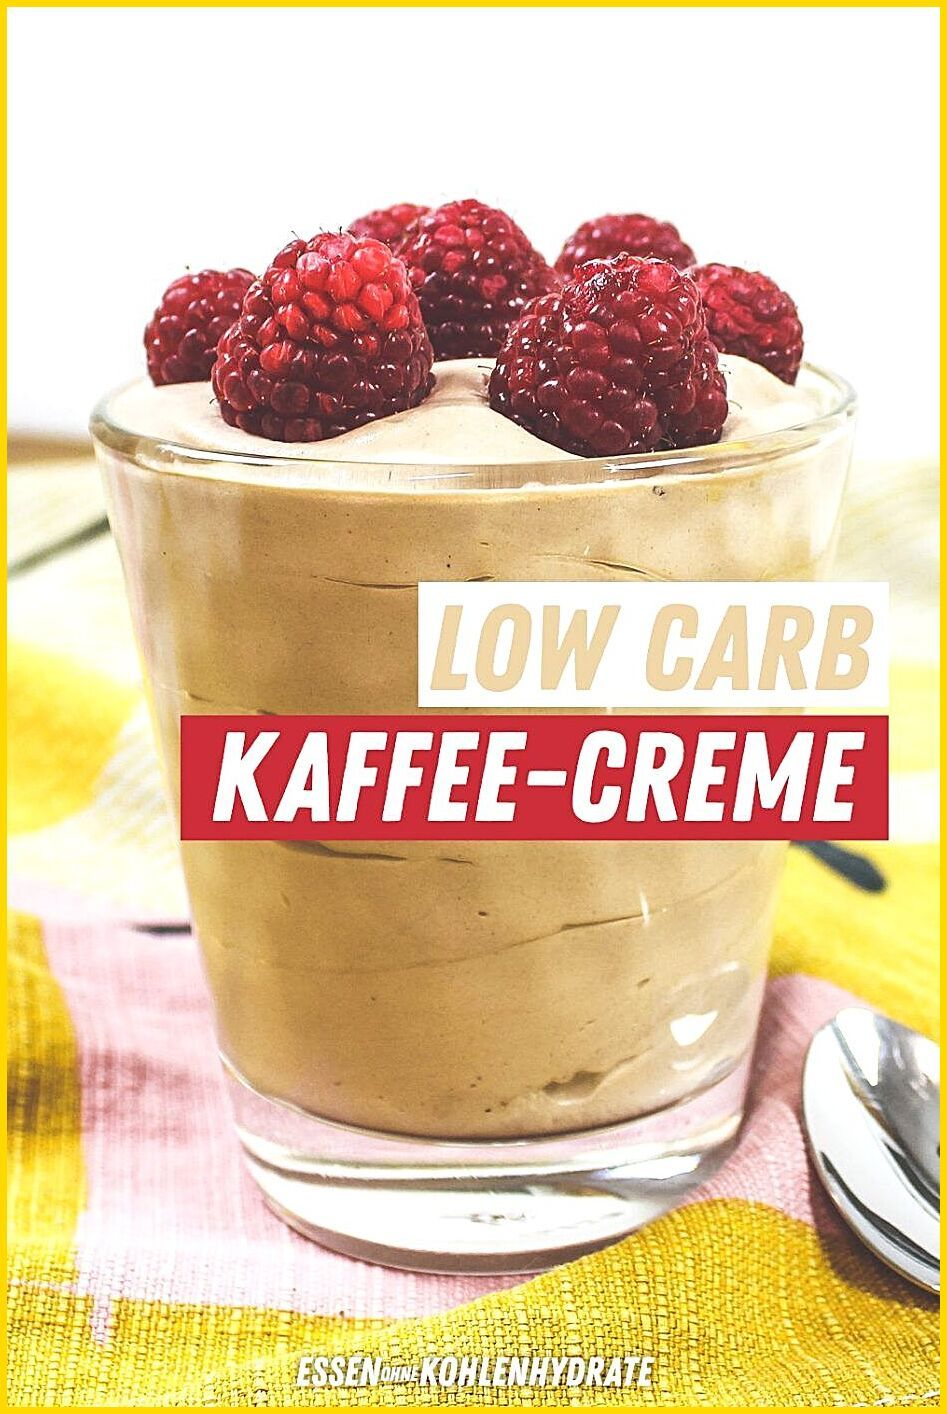 Low Carb Kaffee-Creme - Essen ohne Kohlenhydrate Unser